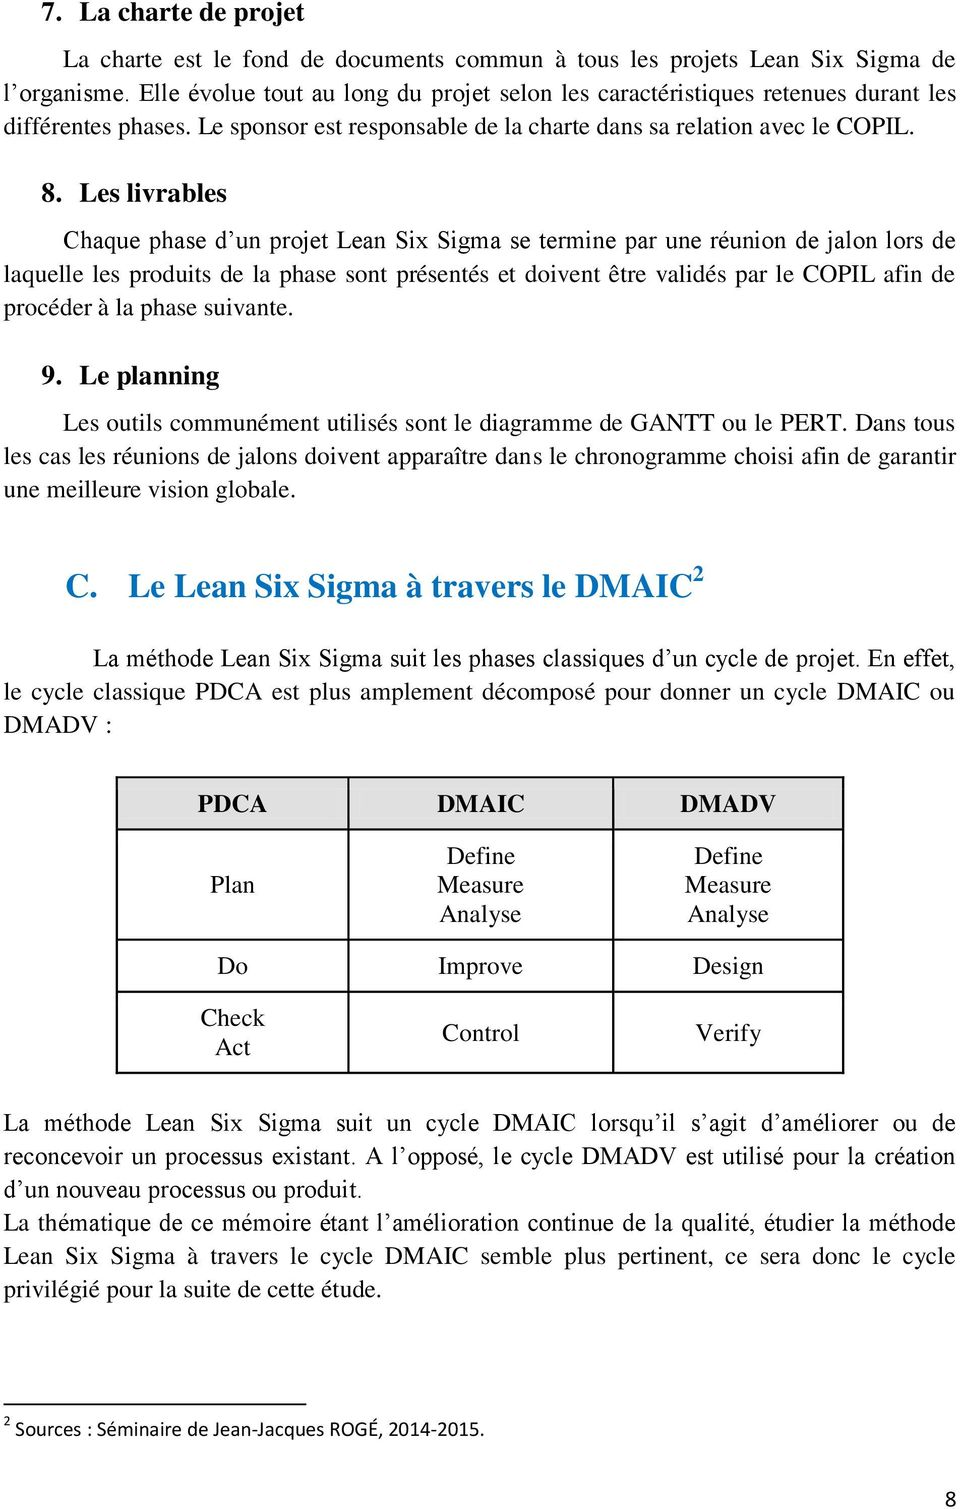 la gestion de projet par la methode lean six sigma pdf. Black Bedroom Furniture Sets. Home Design Ideas